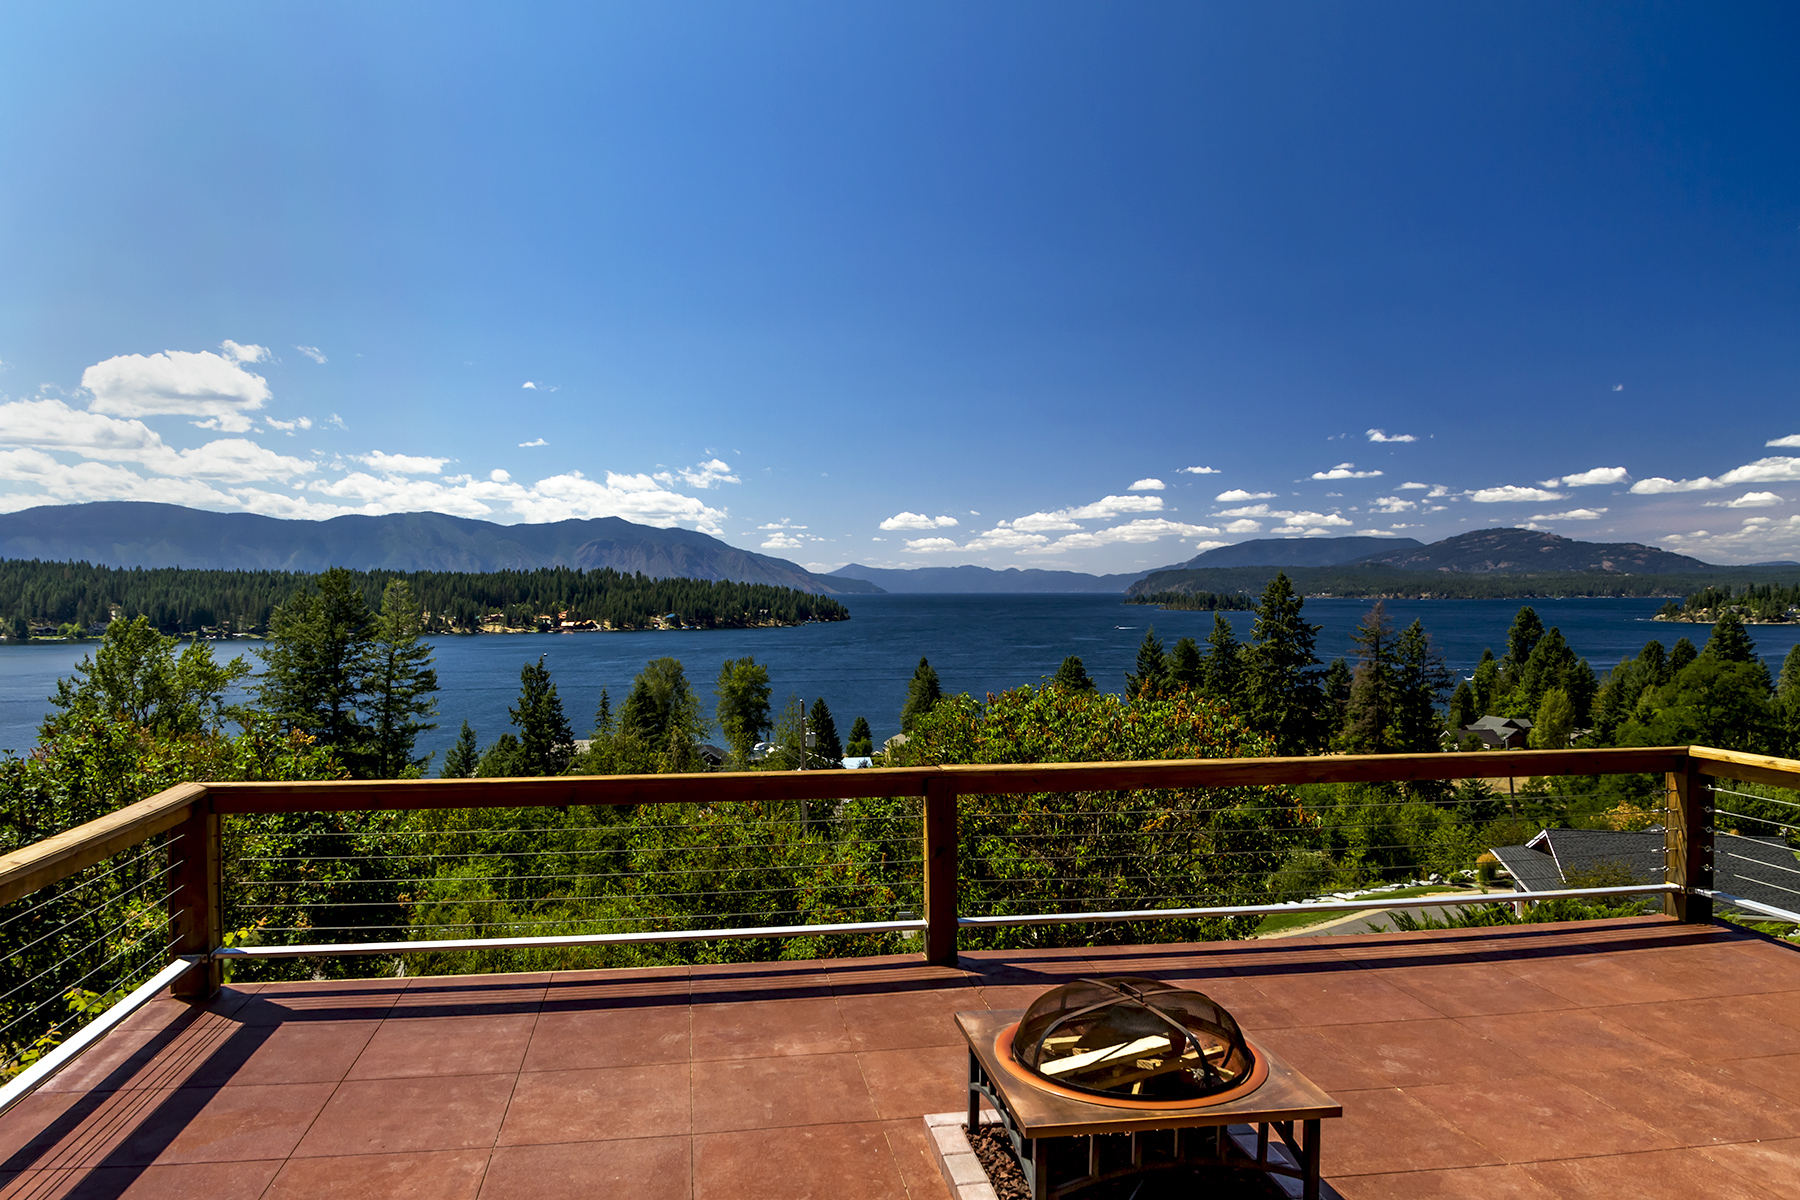 Single Family Homes for Sale at Lake Pend Oreille View Home 523 Hope Hope, Idaho 83836 United States